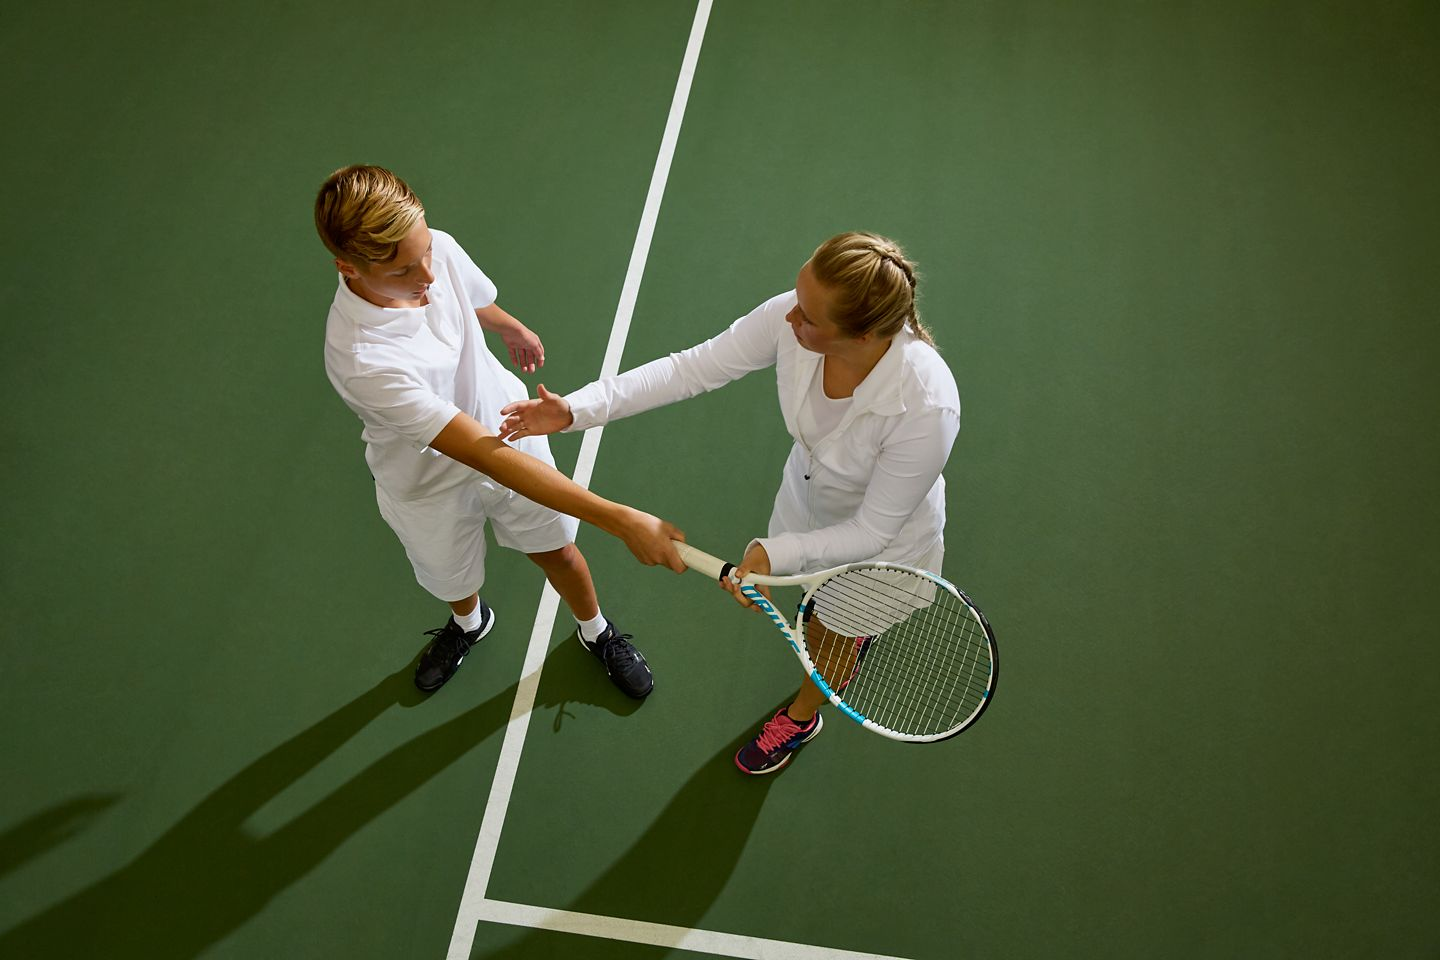 Tennis instructor teaching youth player